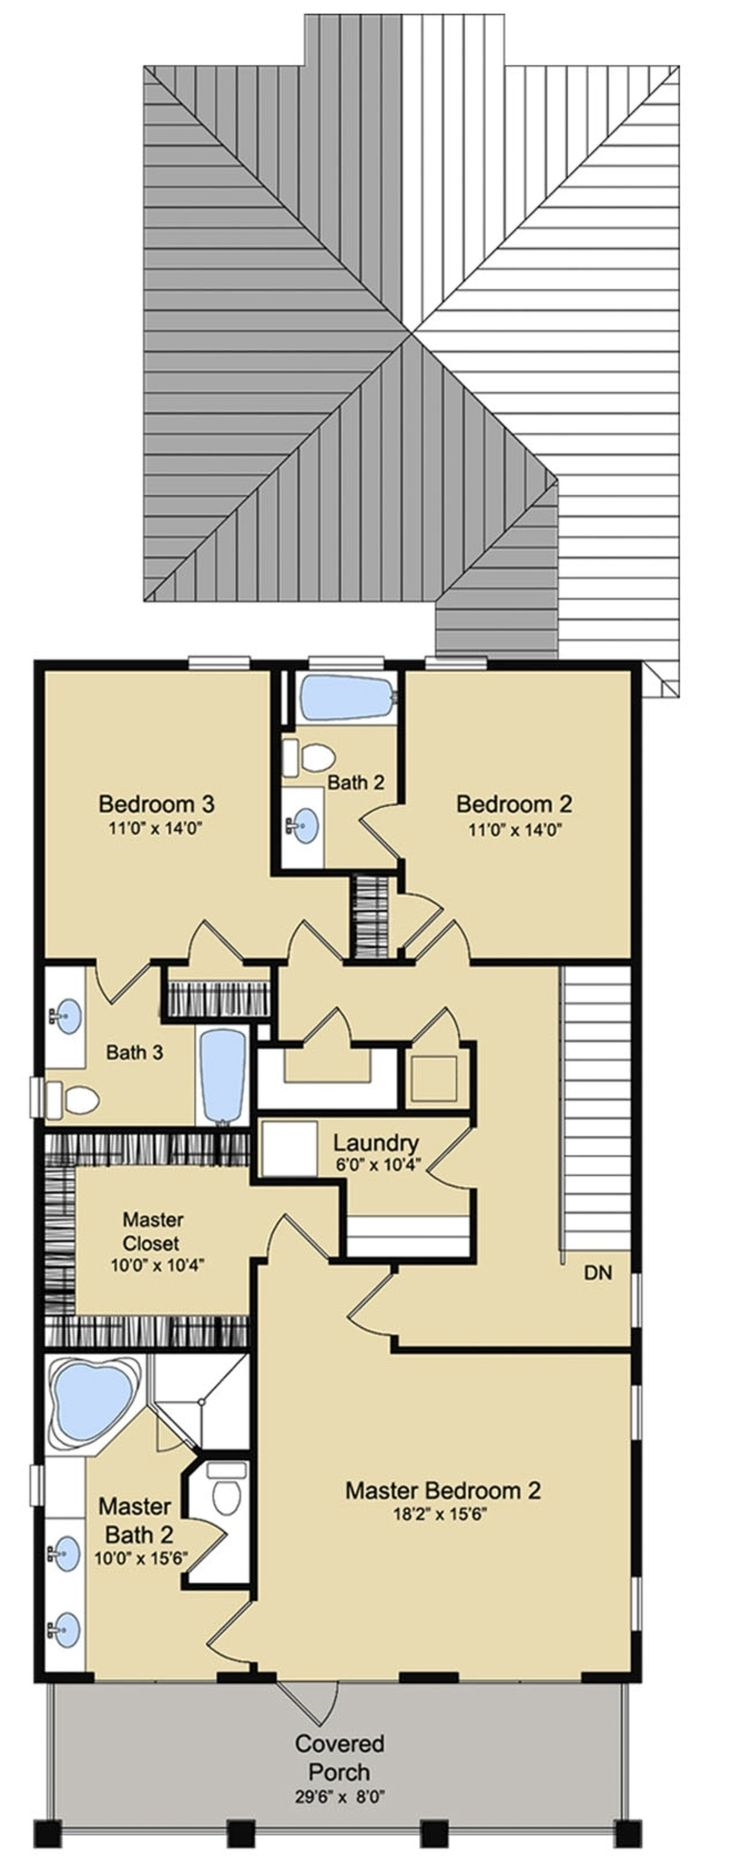 216 best design floor plans images on pinterest house floor this beach design floor plan is 2888 sq ft and has 4 bedrooms and has bathrooms